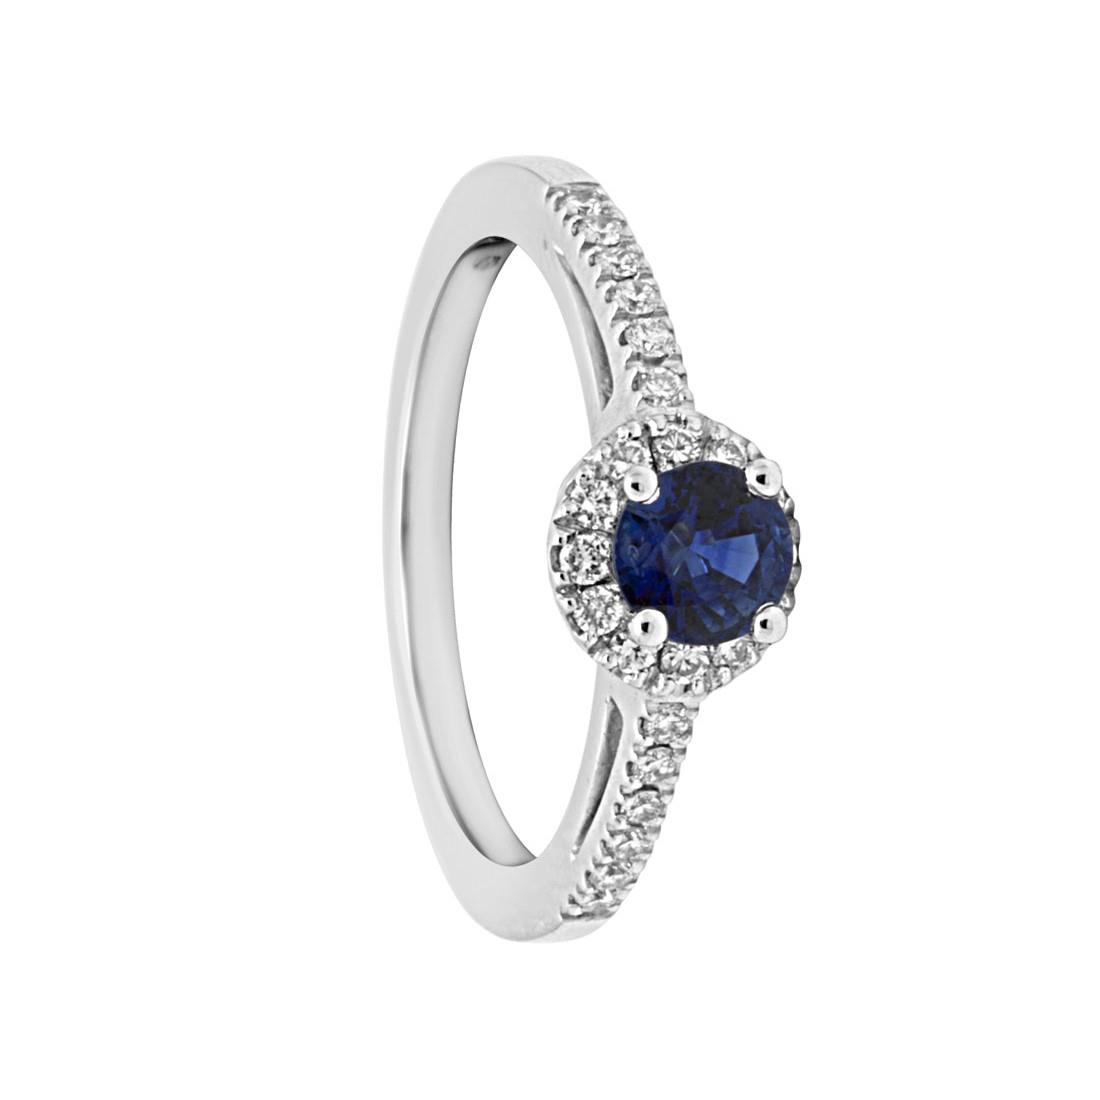 Ring with sapphire and diamonds - ORO&CO